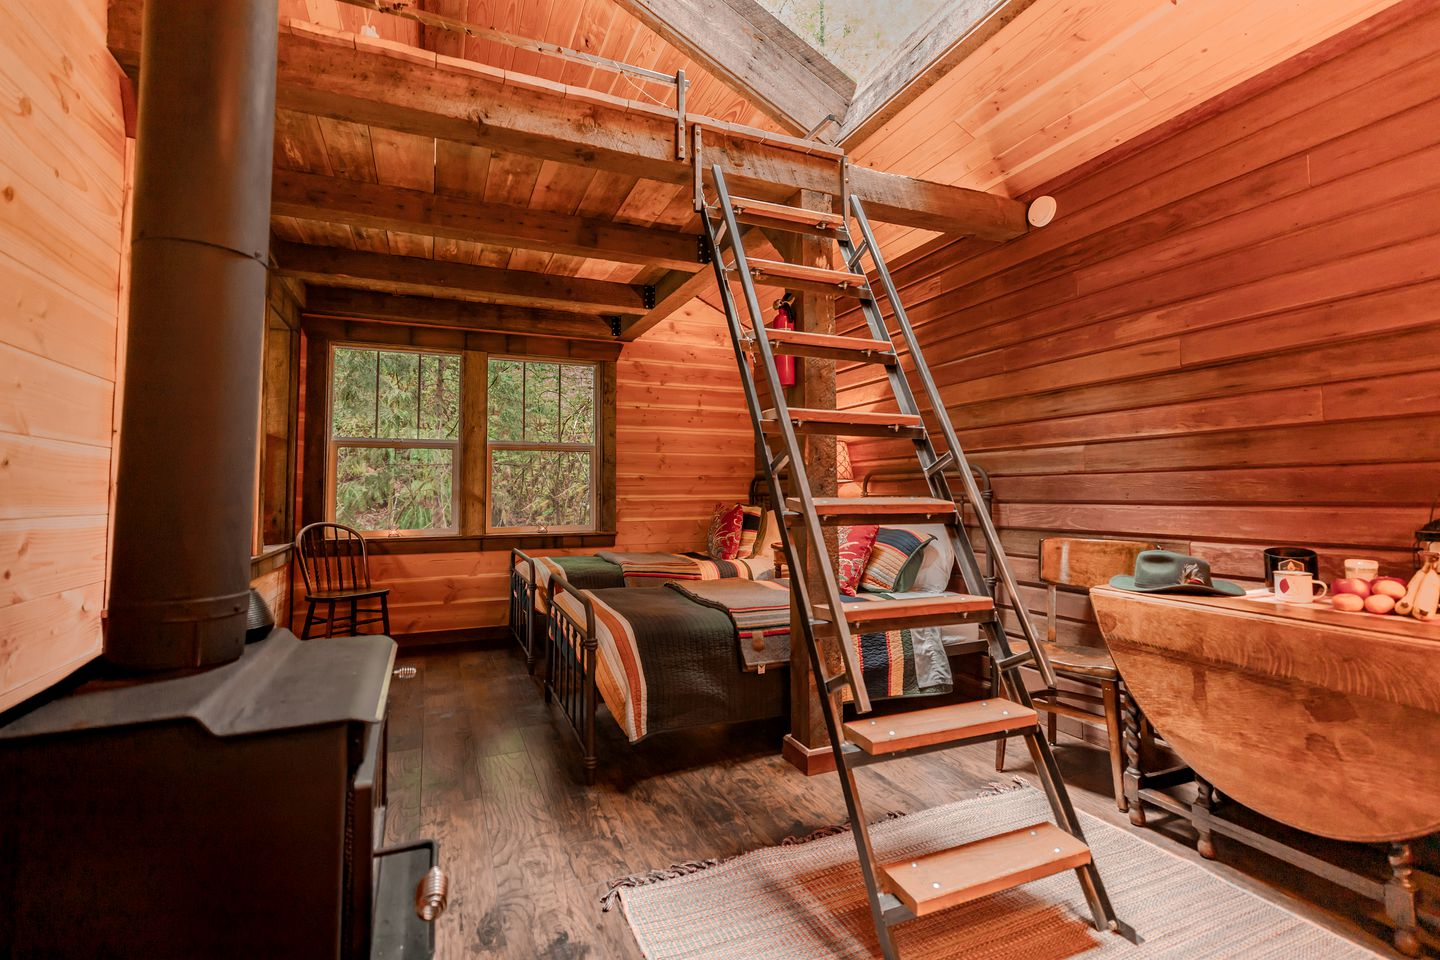 The cabin interior with two beds and a ladder to the loft bed